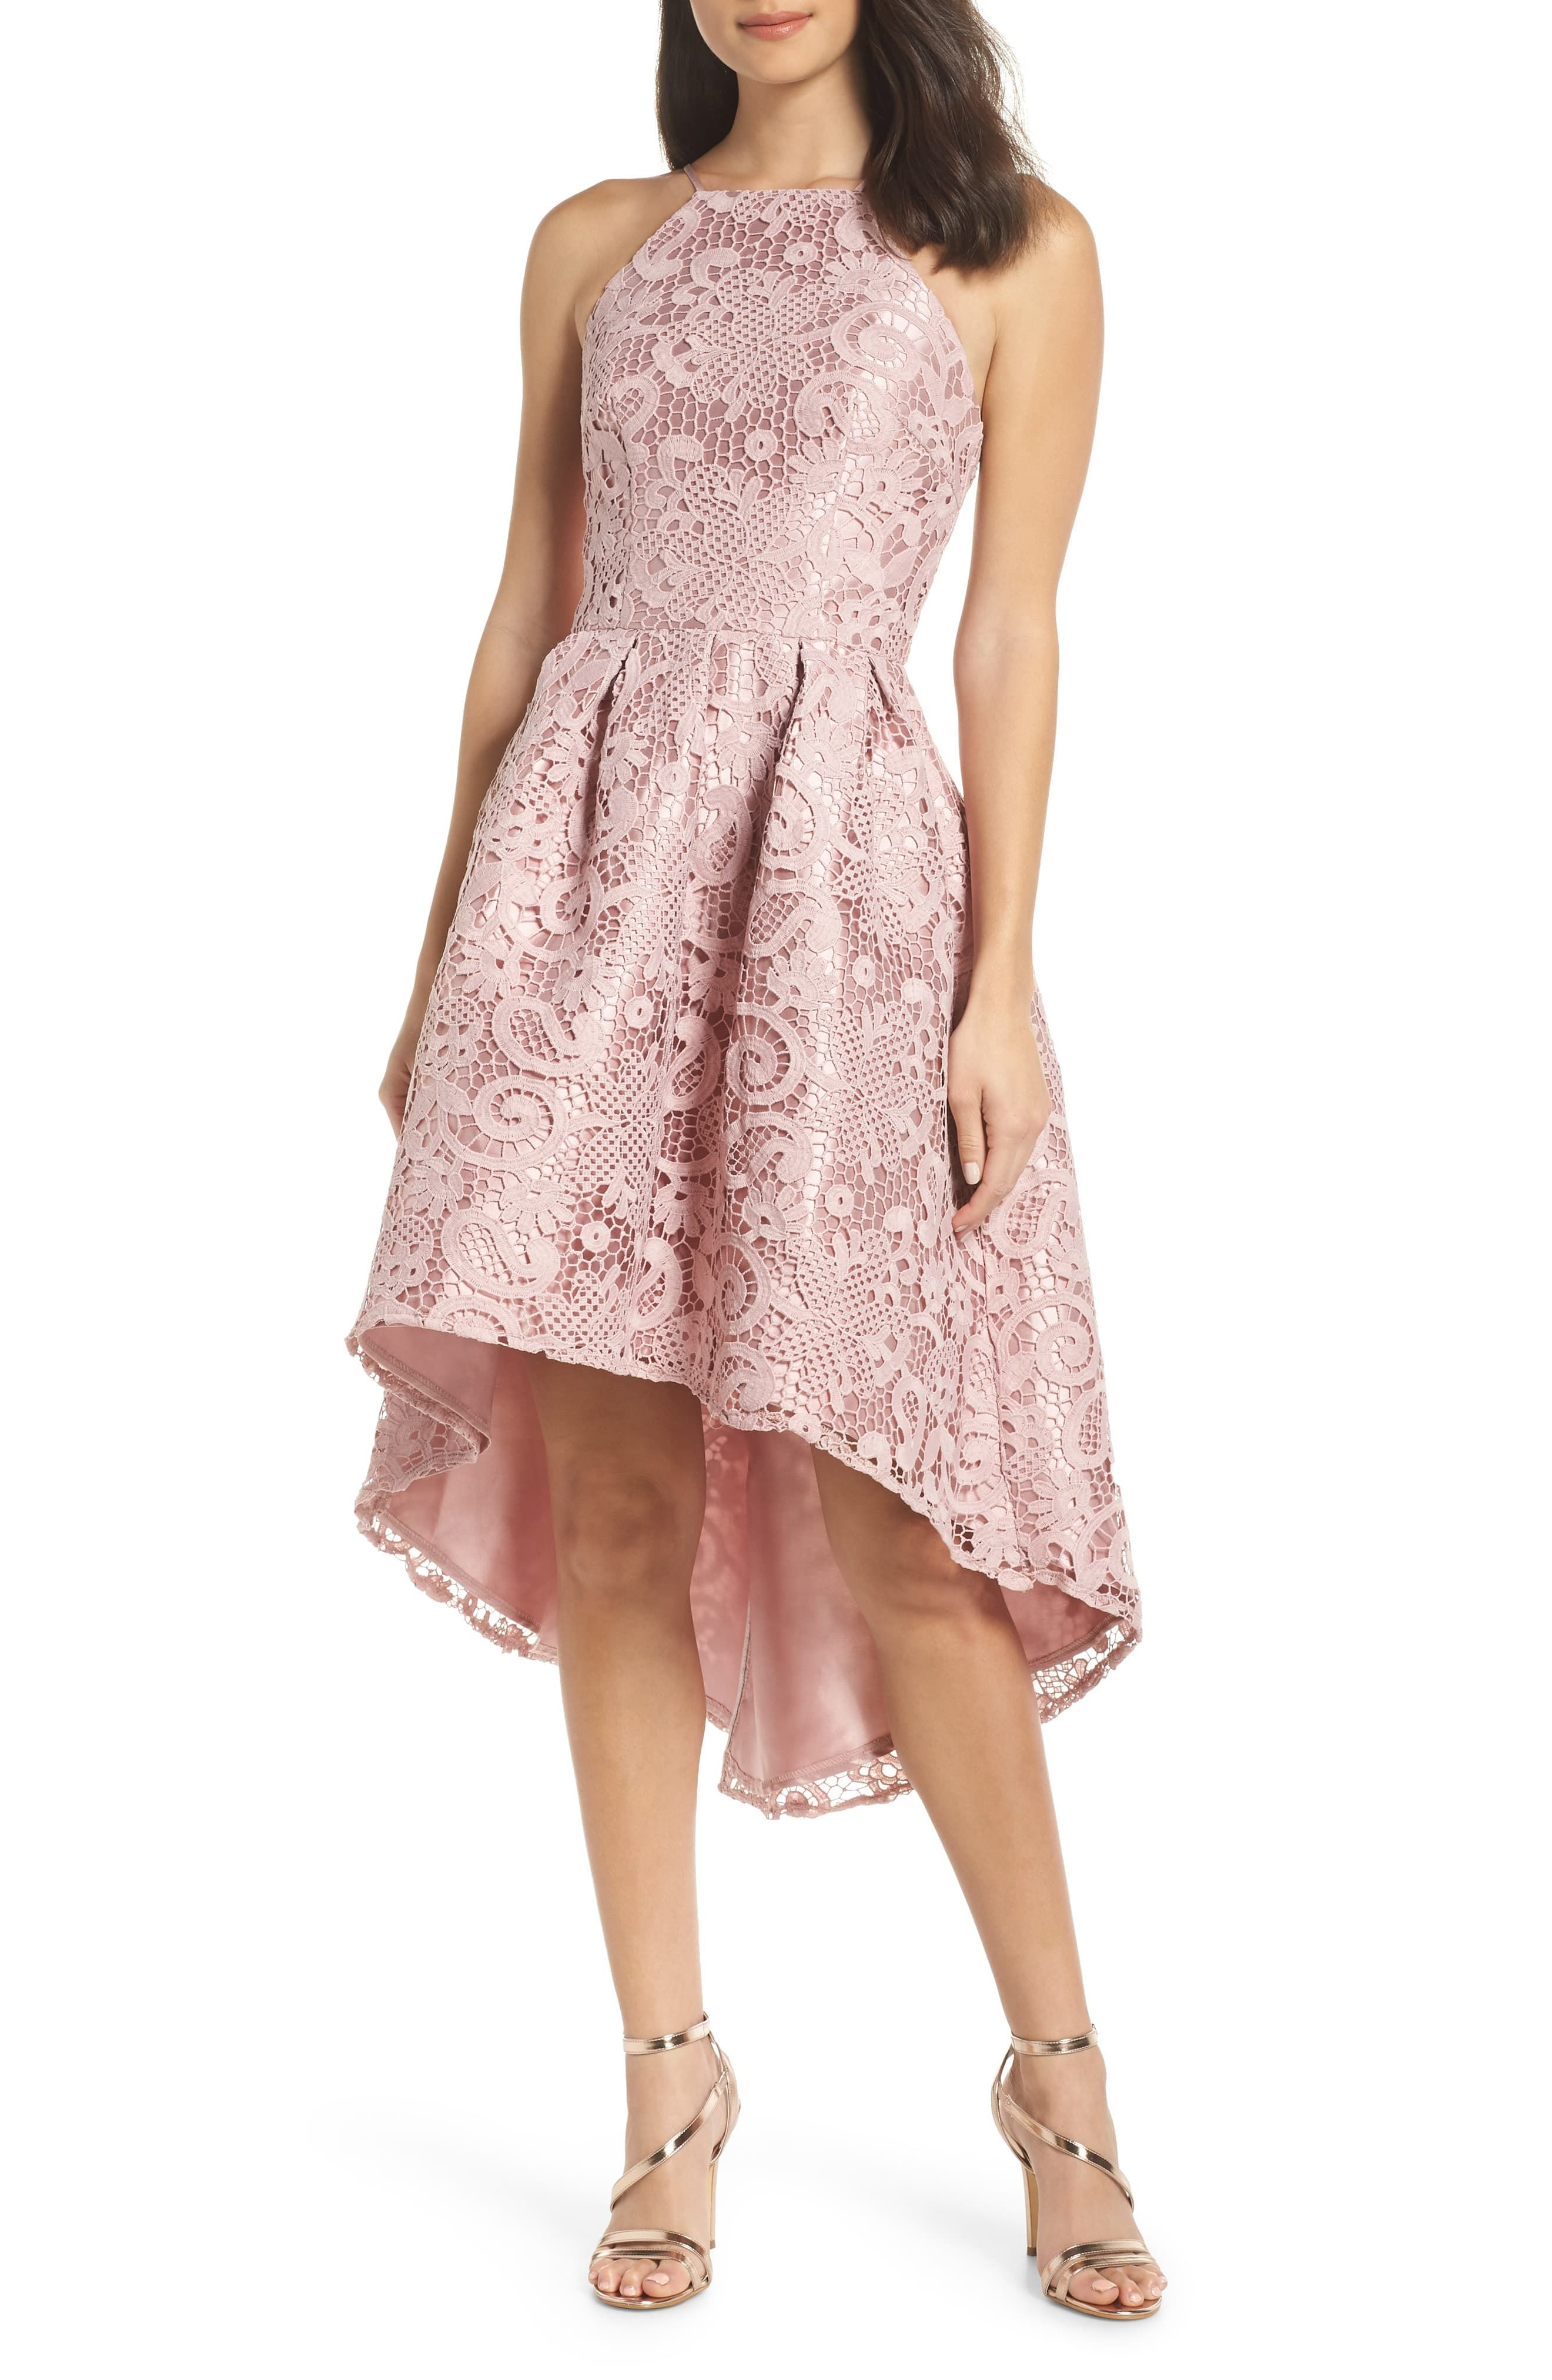 Floral Lace Overlay Midi Dress in Black   Dresses